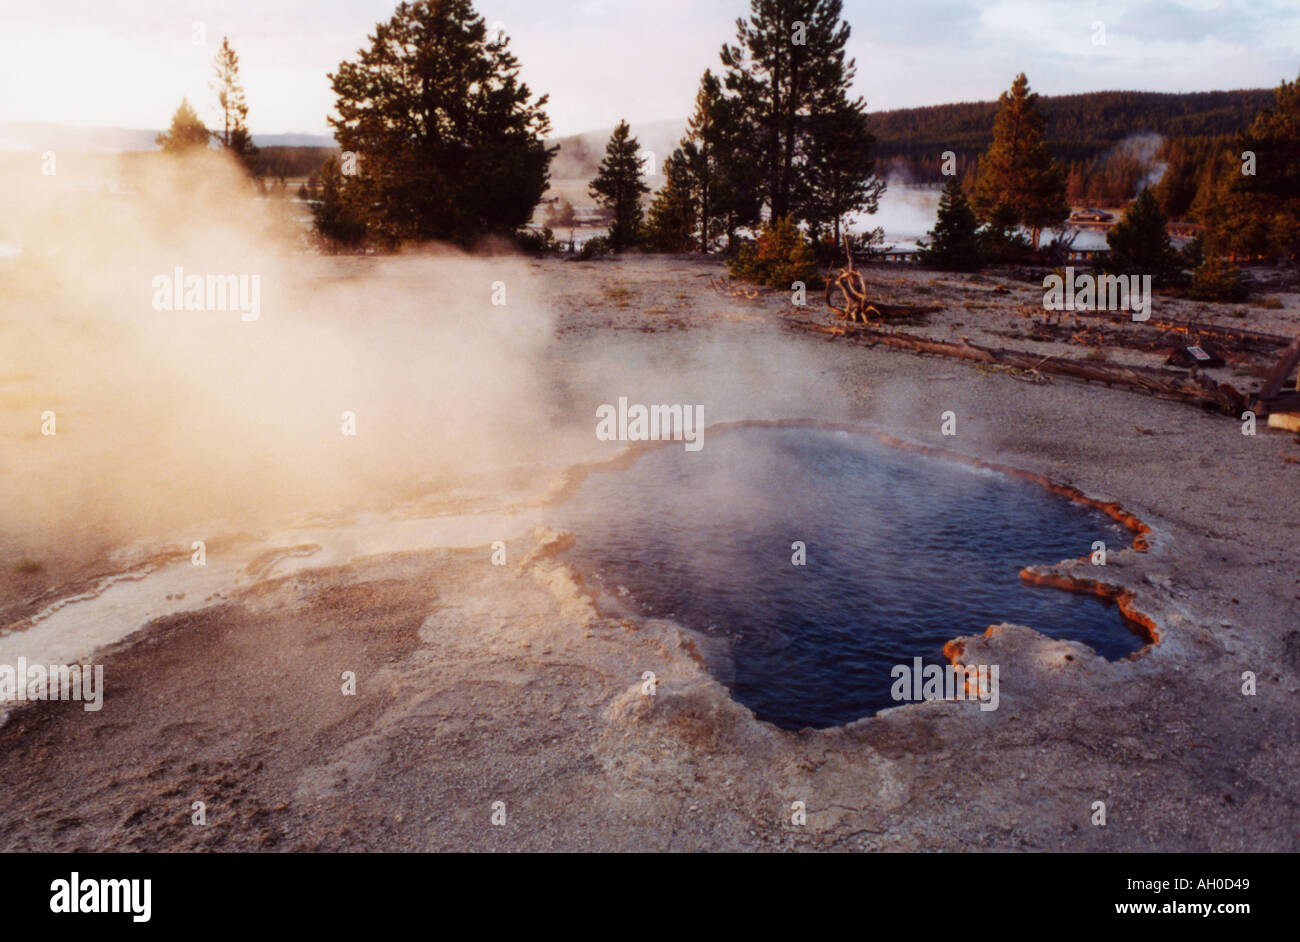 Steaming hot paint pot in Yellowstone National Park, Wyoming - Stock Image